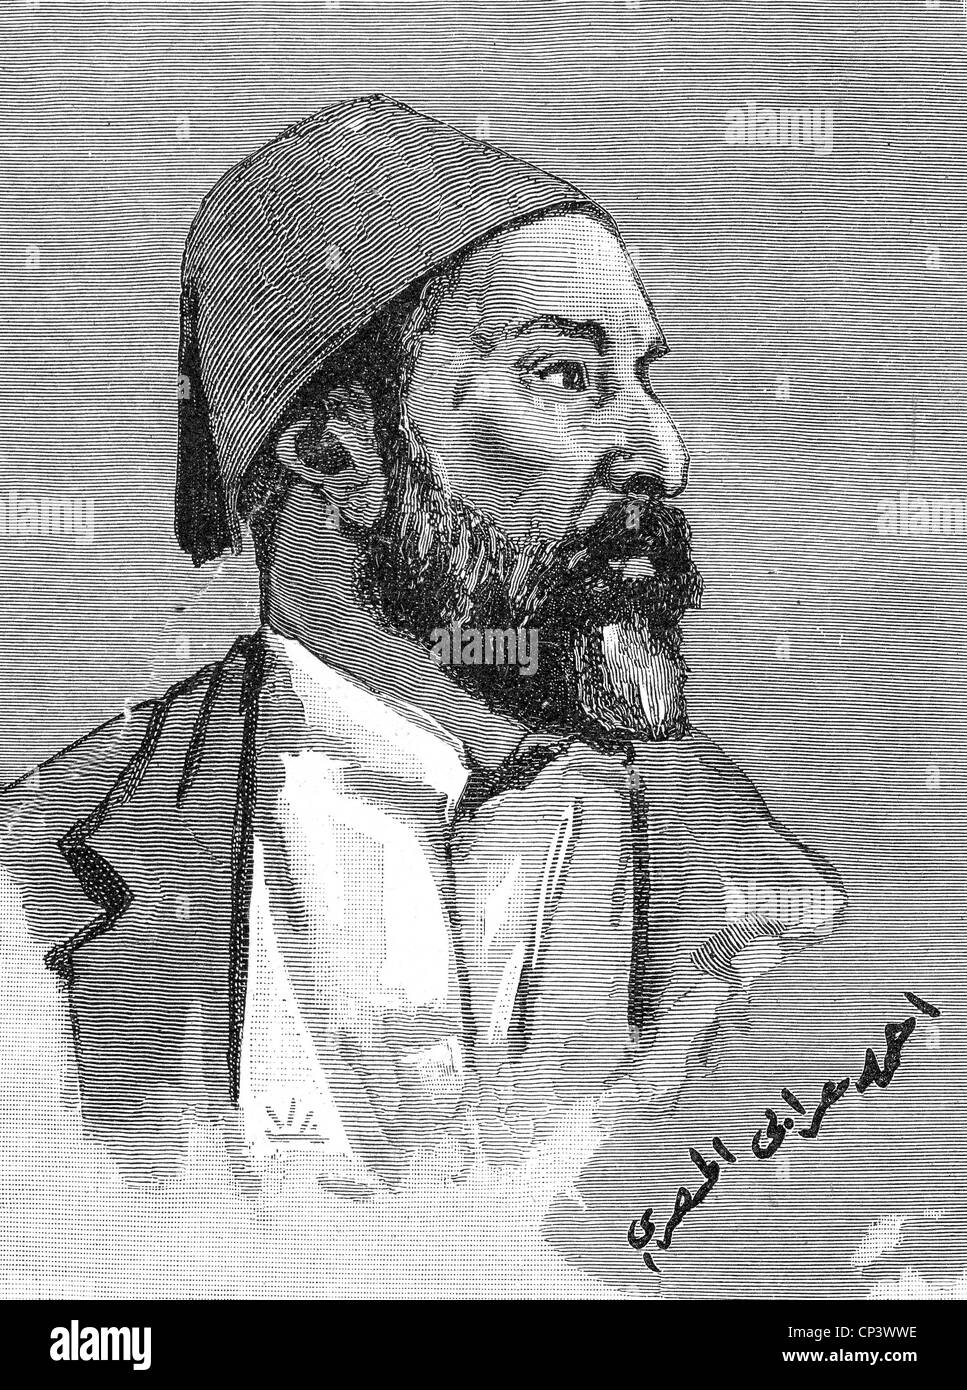 AHMED ORABI (1841-1911) Egyptian army general who led a revolt in 1879 - Stock Image